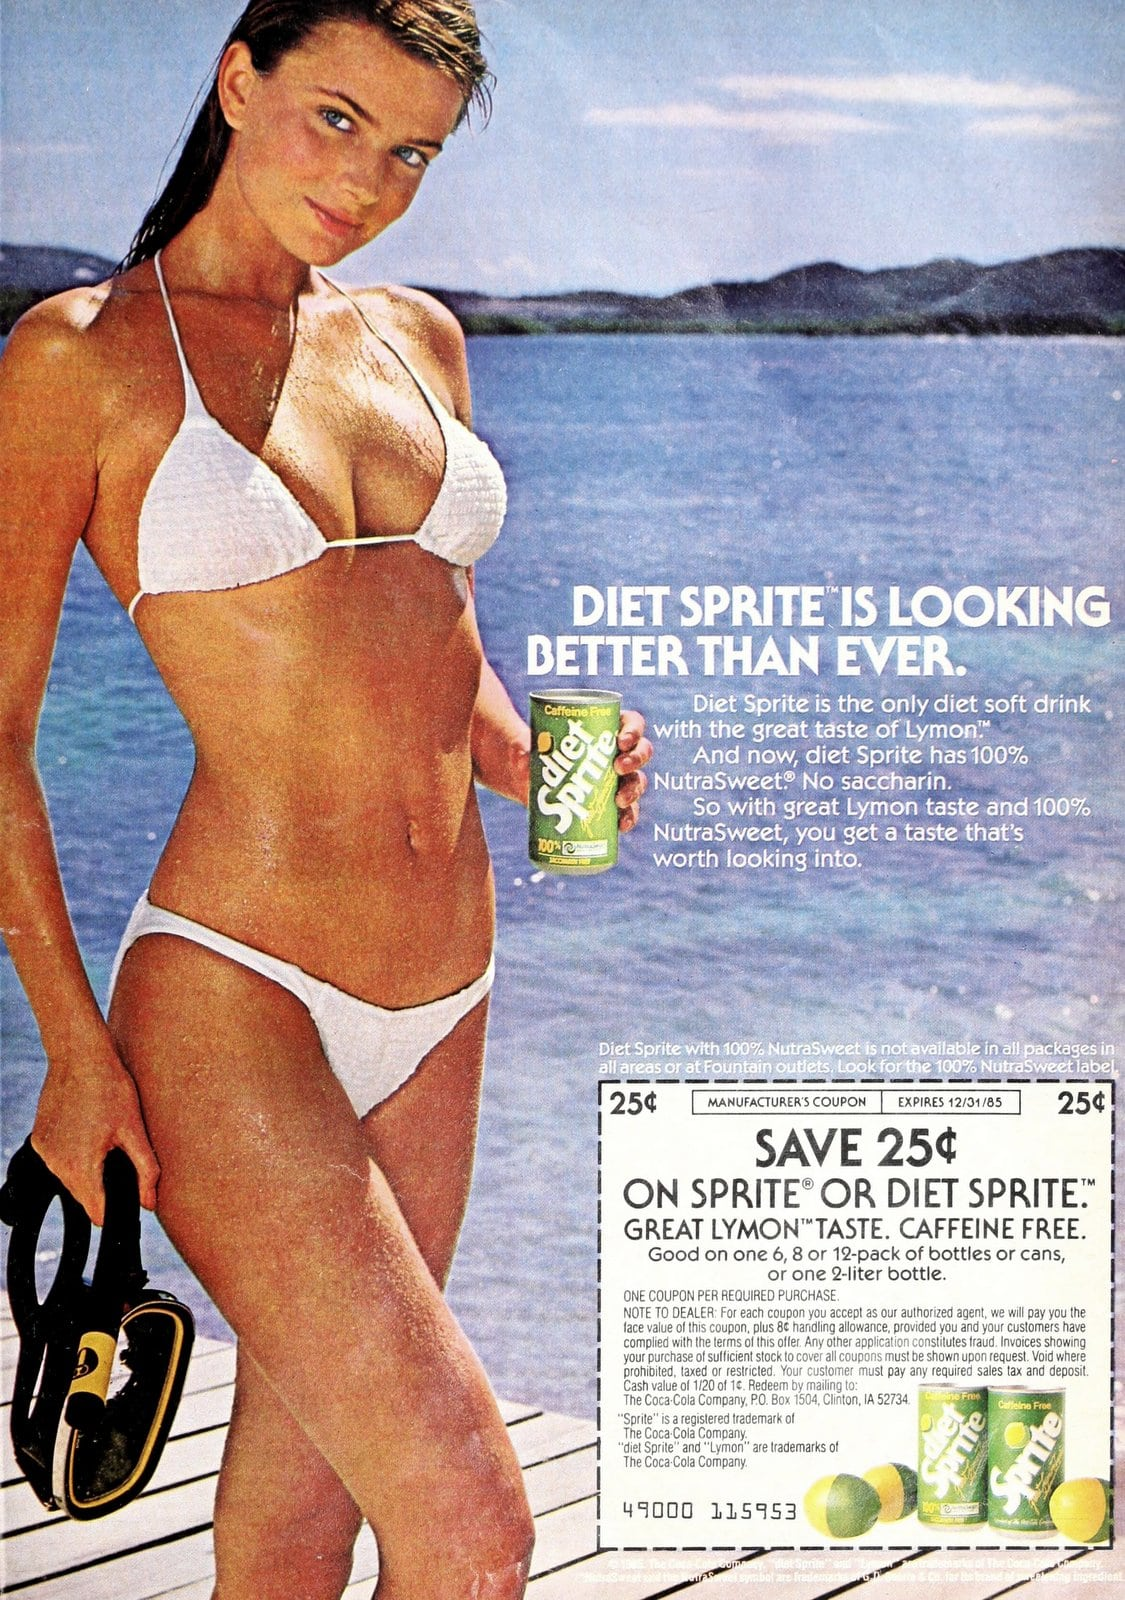 Diet Sprite looking better than ever (1985)